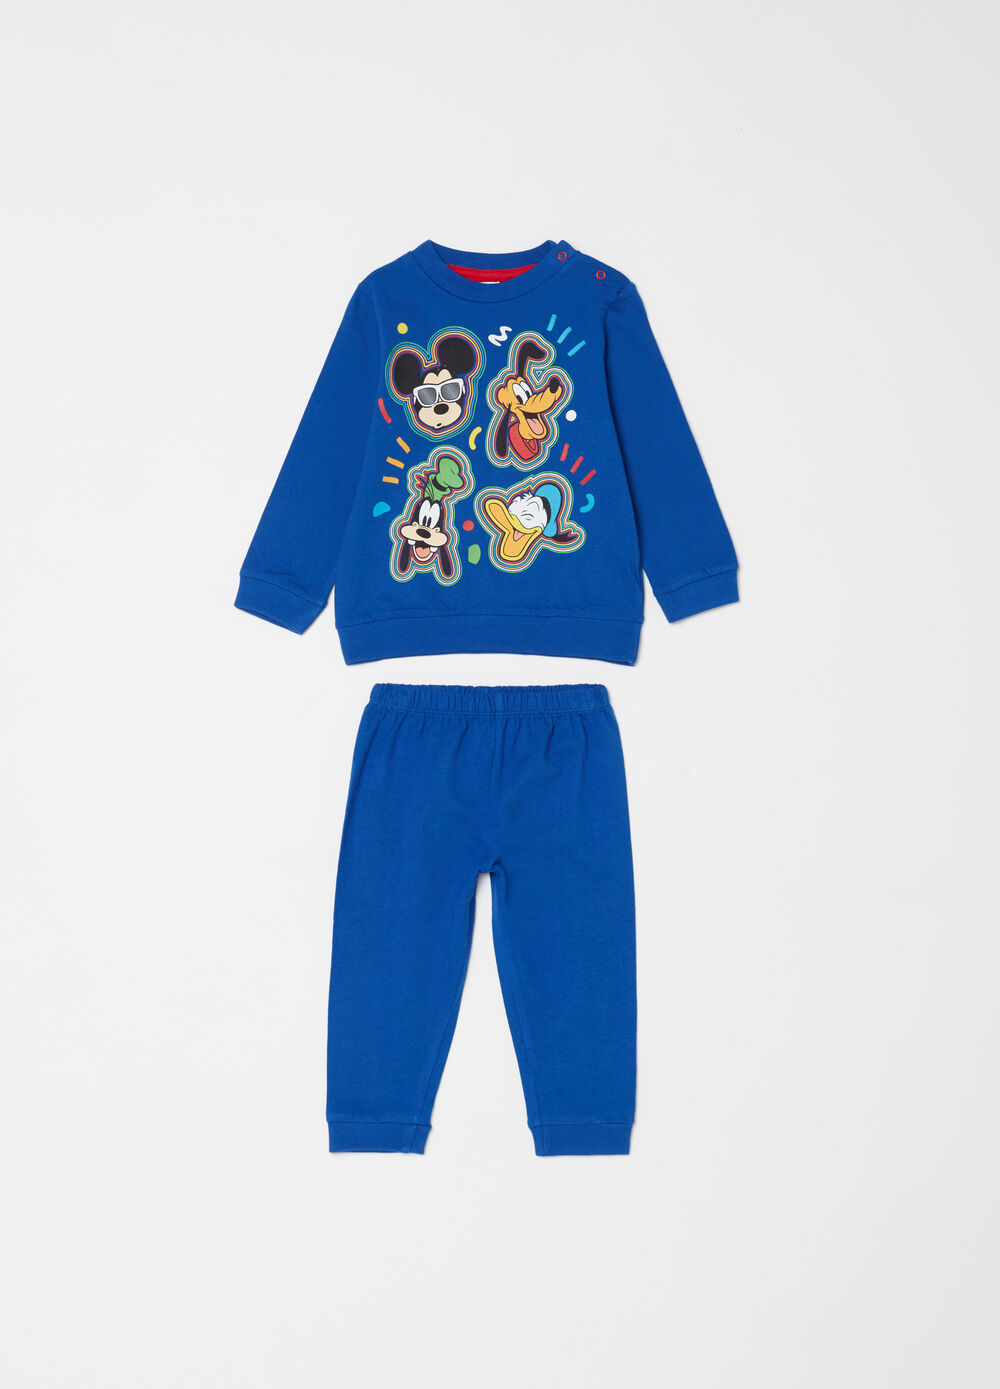 Full-length, 100% cotton pyjamas with cartoons